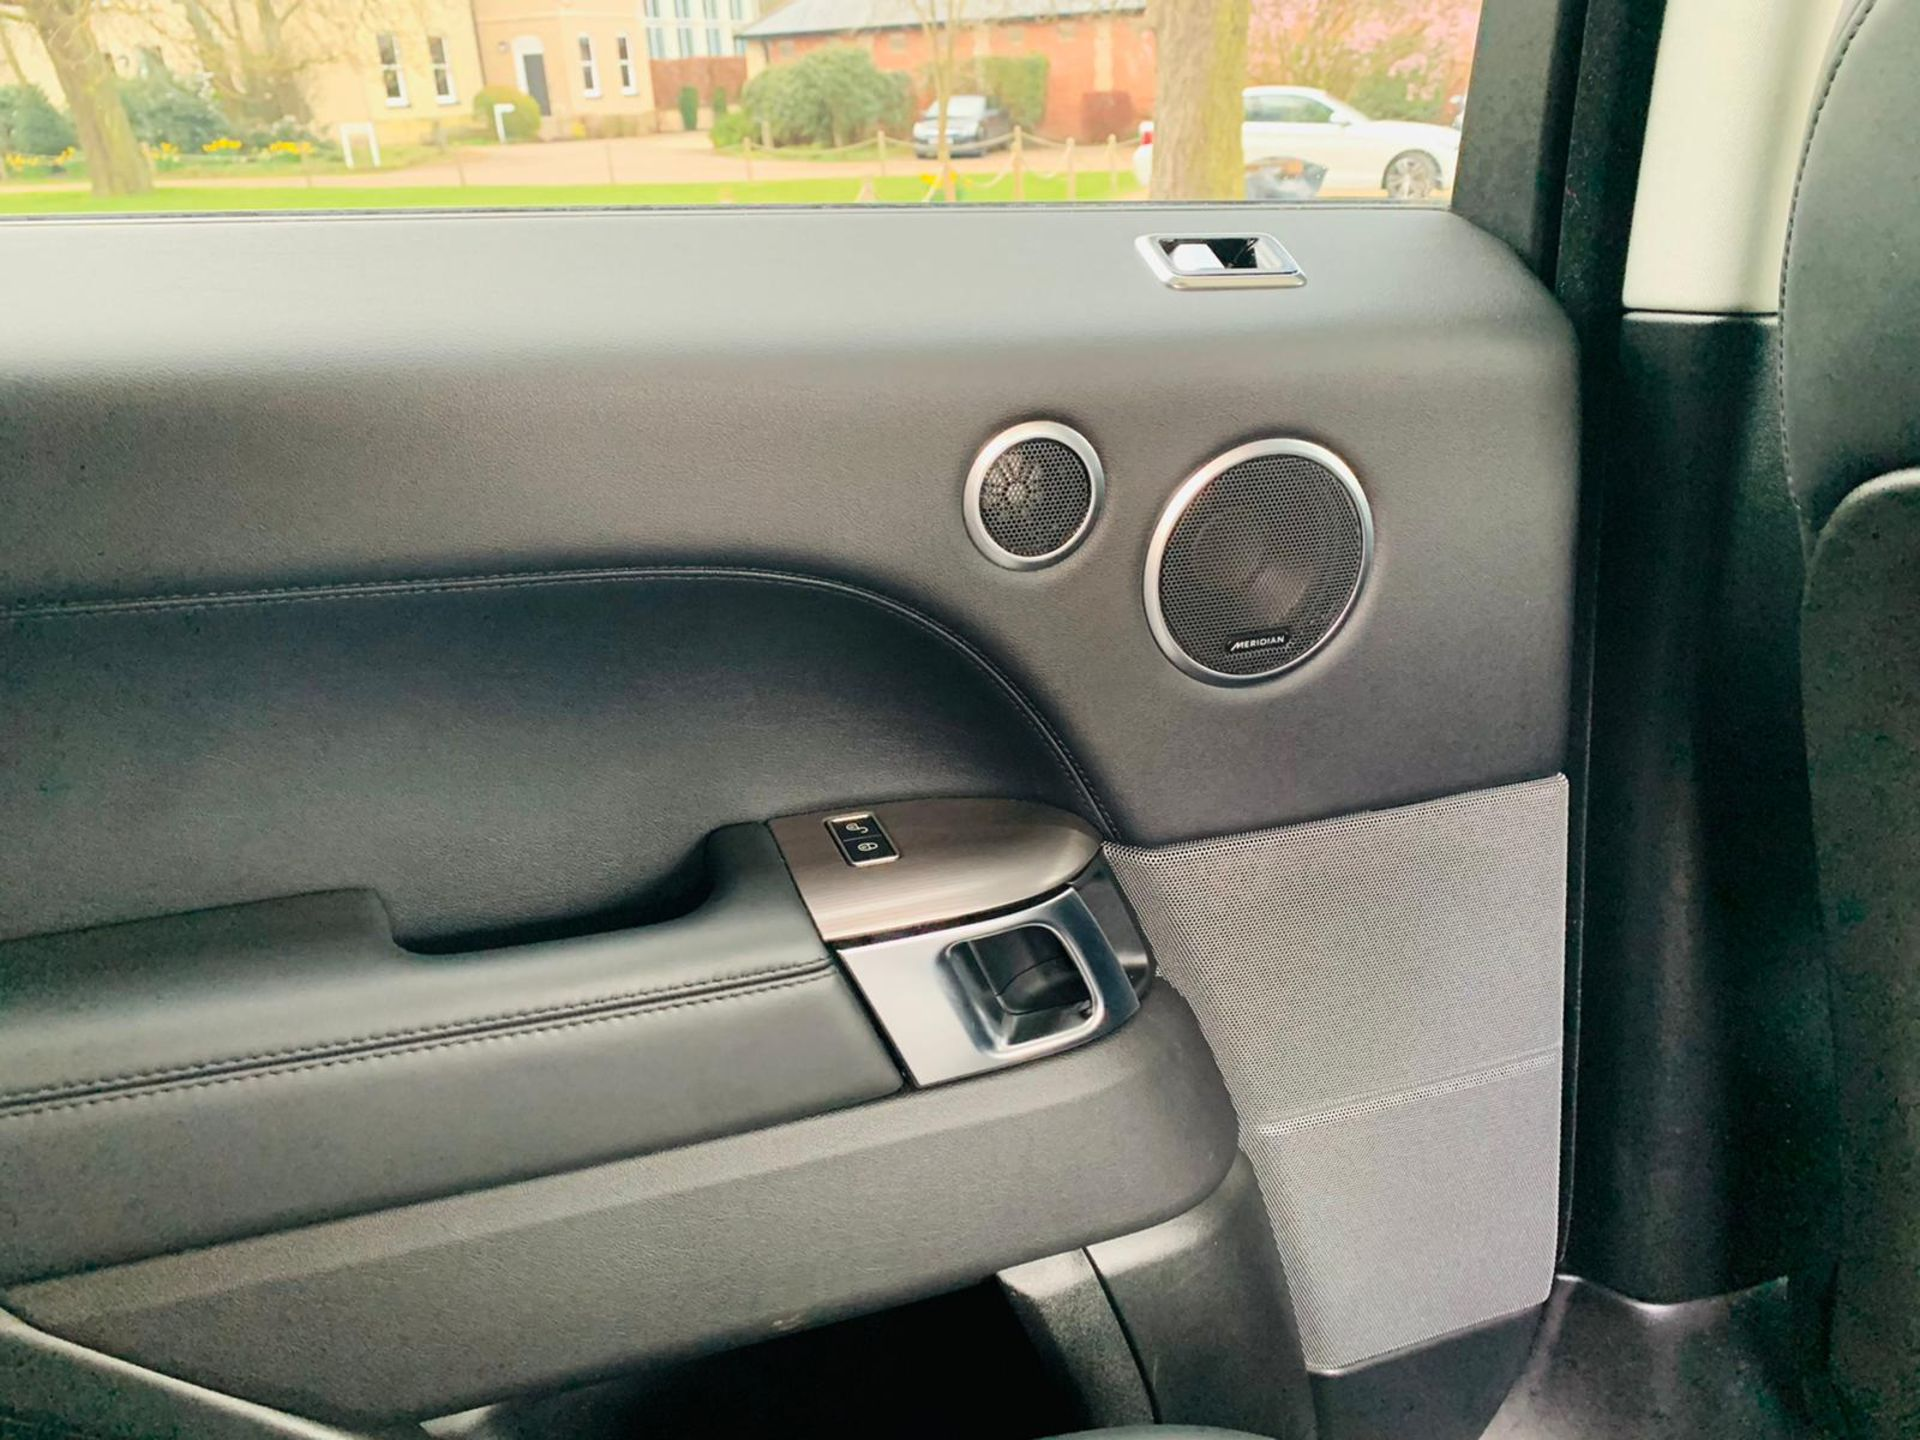 (RESERVE MET) Range Rover Sport 3.0 SDV6 HSE Auto - 2019 - 1 Keeper From New - Virtual Cockpit - - Image 40 of 42